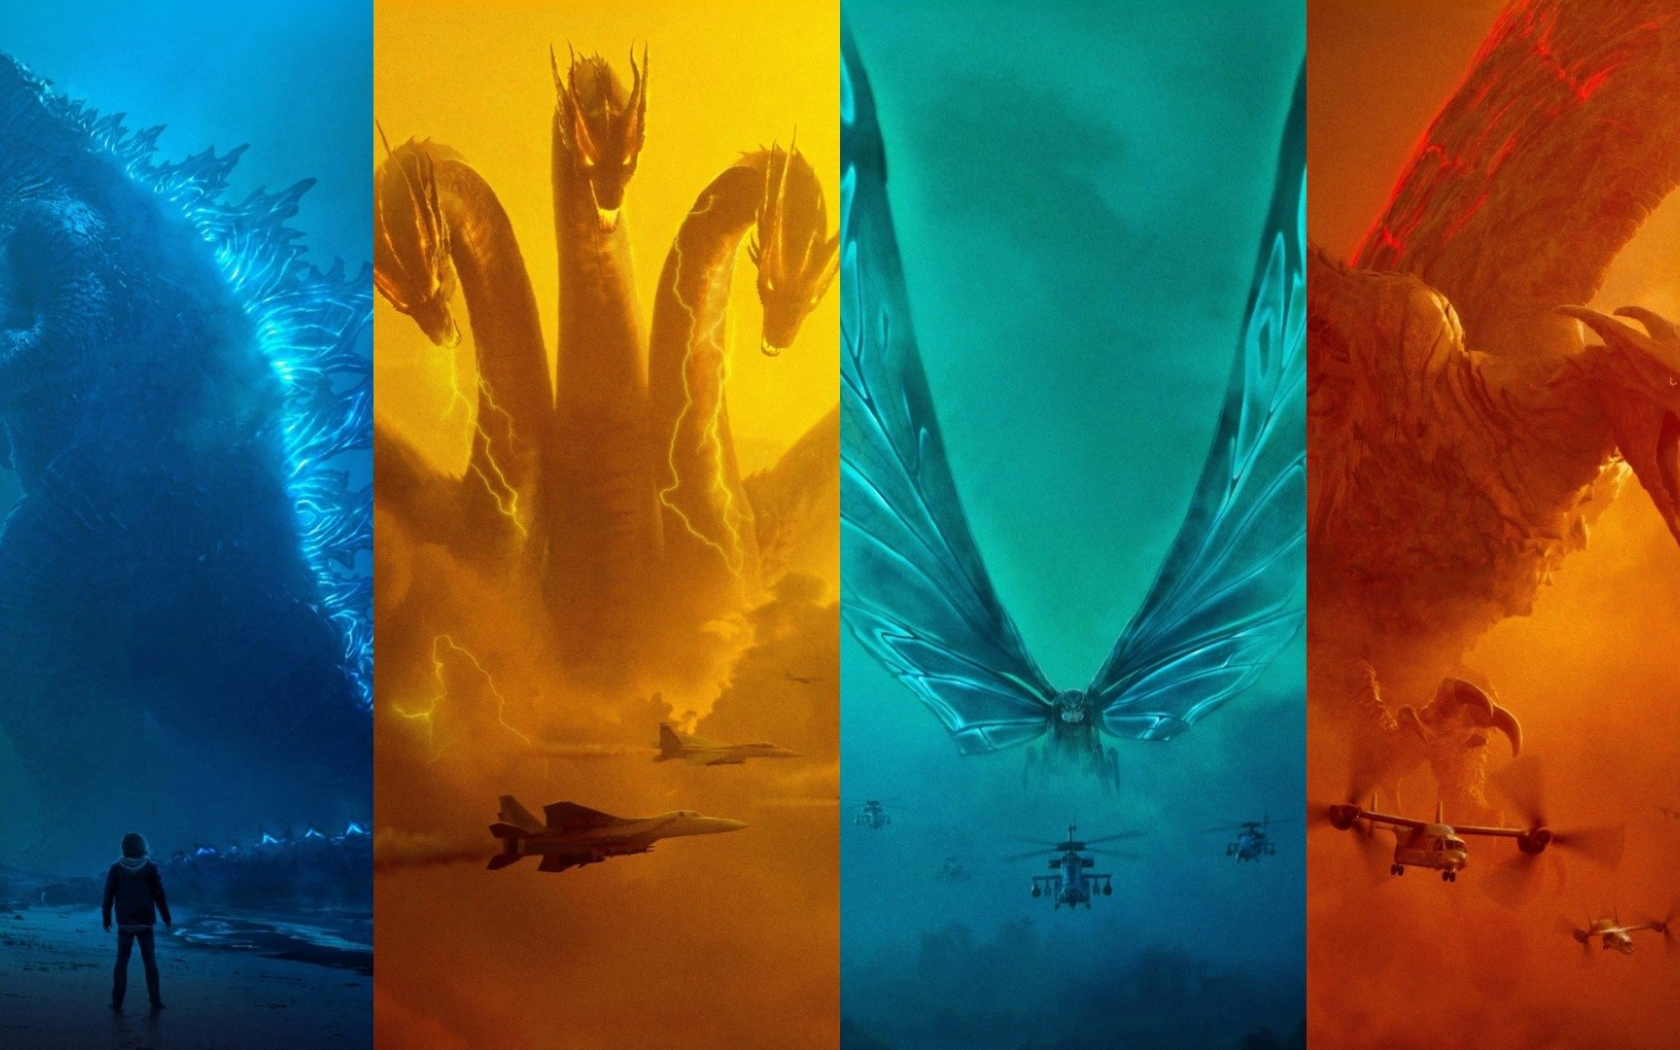 Free Download Godzilla King Of The Monsters Hd Wallpaper